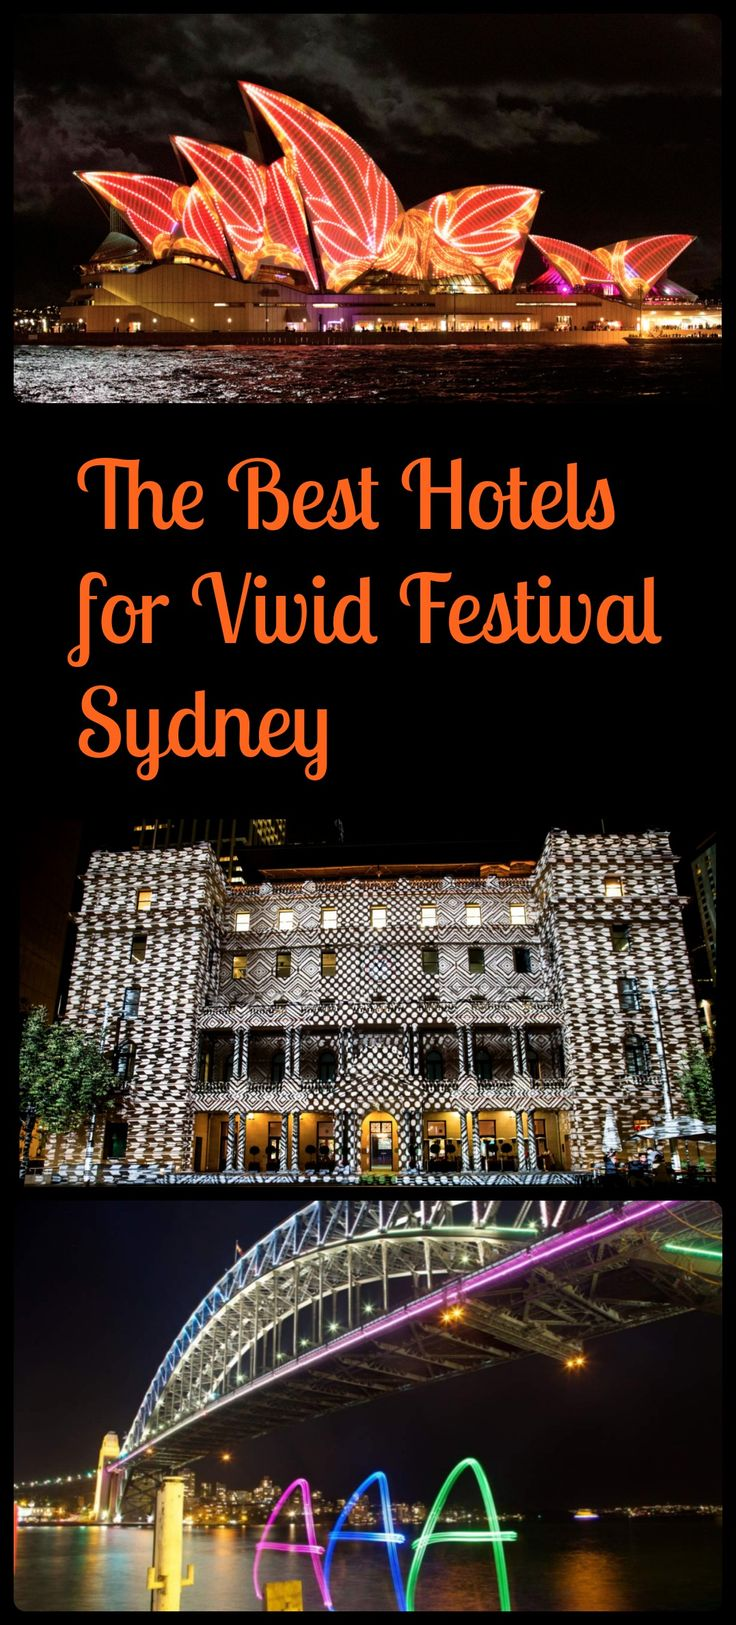 Sydney's stunning festival of light Vivid is a winter favourite. Here are some of the best hotels with a (spectacular) view to stay in.